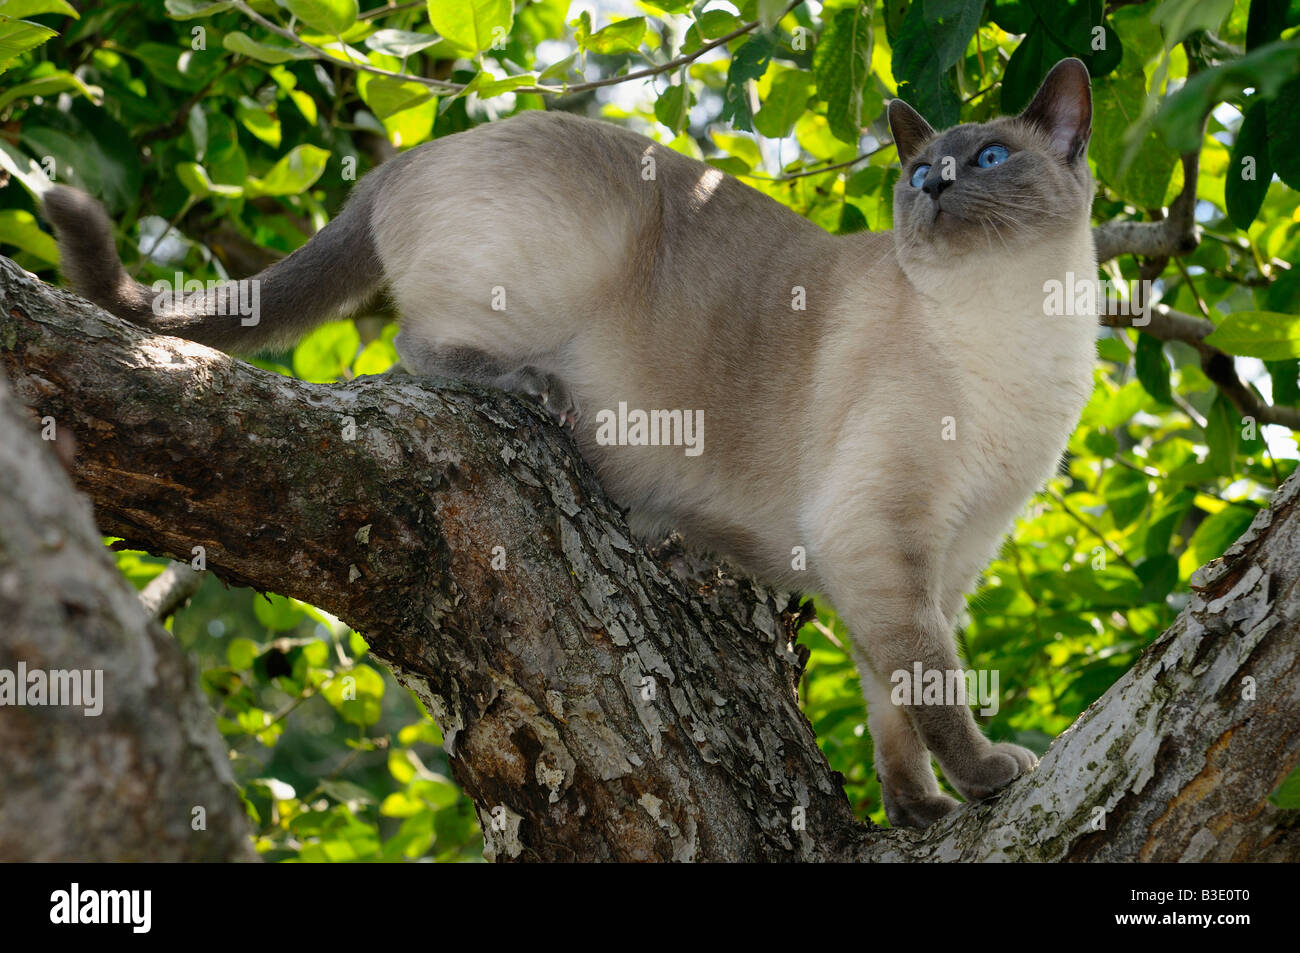 blue point siamese cat looking up while climbing an apple tree stock photo royalty free image. Black Bedroom Furniture Sets. Home Design Ideas